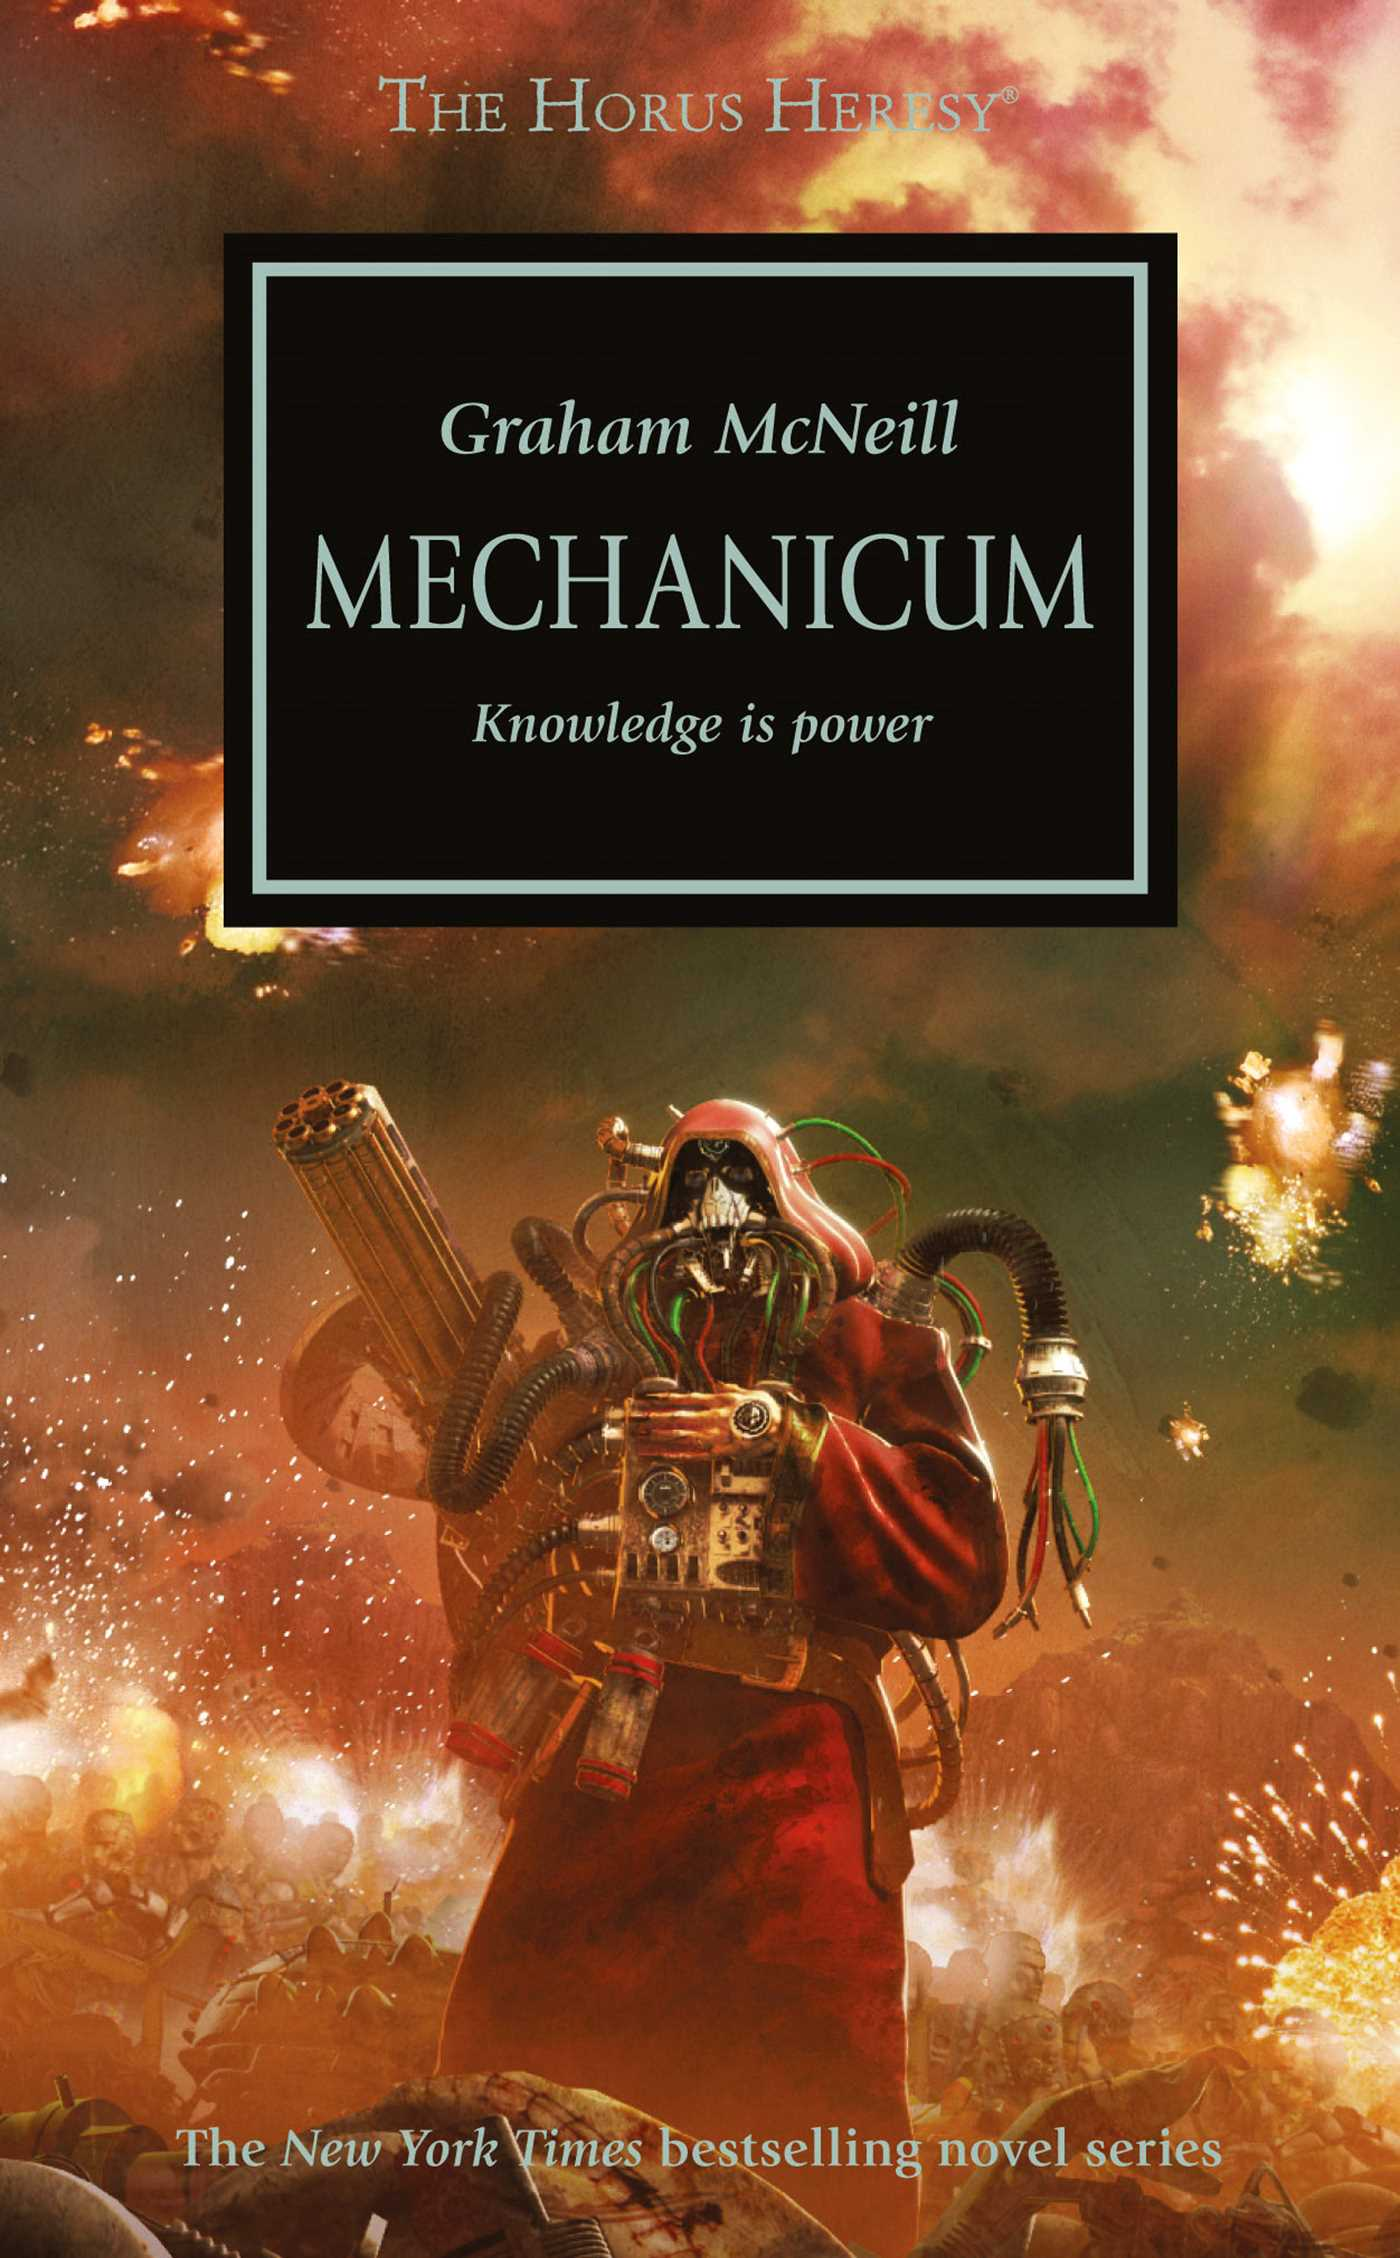 Mechanicum 9781849708173 hr